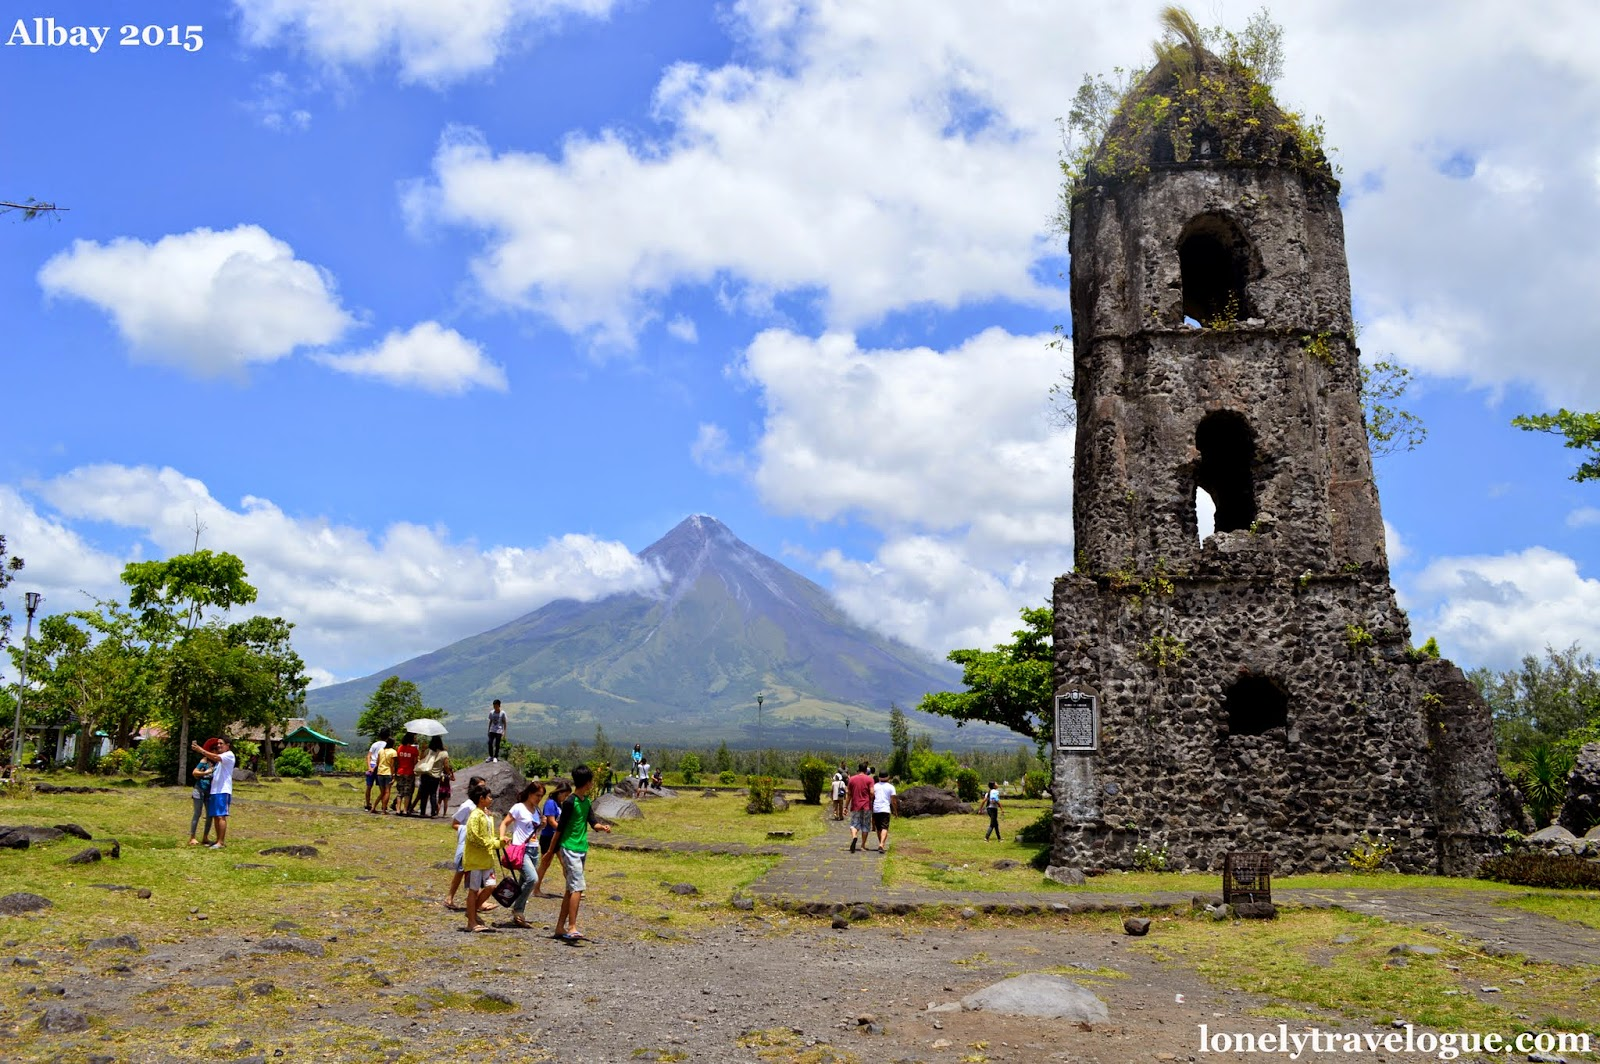 Lonely Travelogue Five Things To Do In Daraga And Legaspi Albay